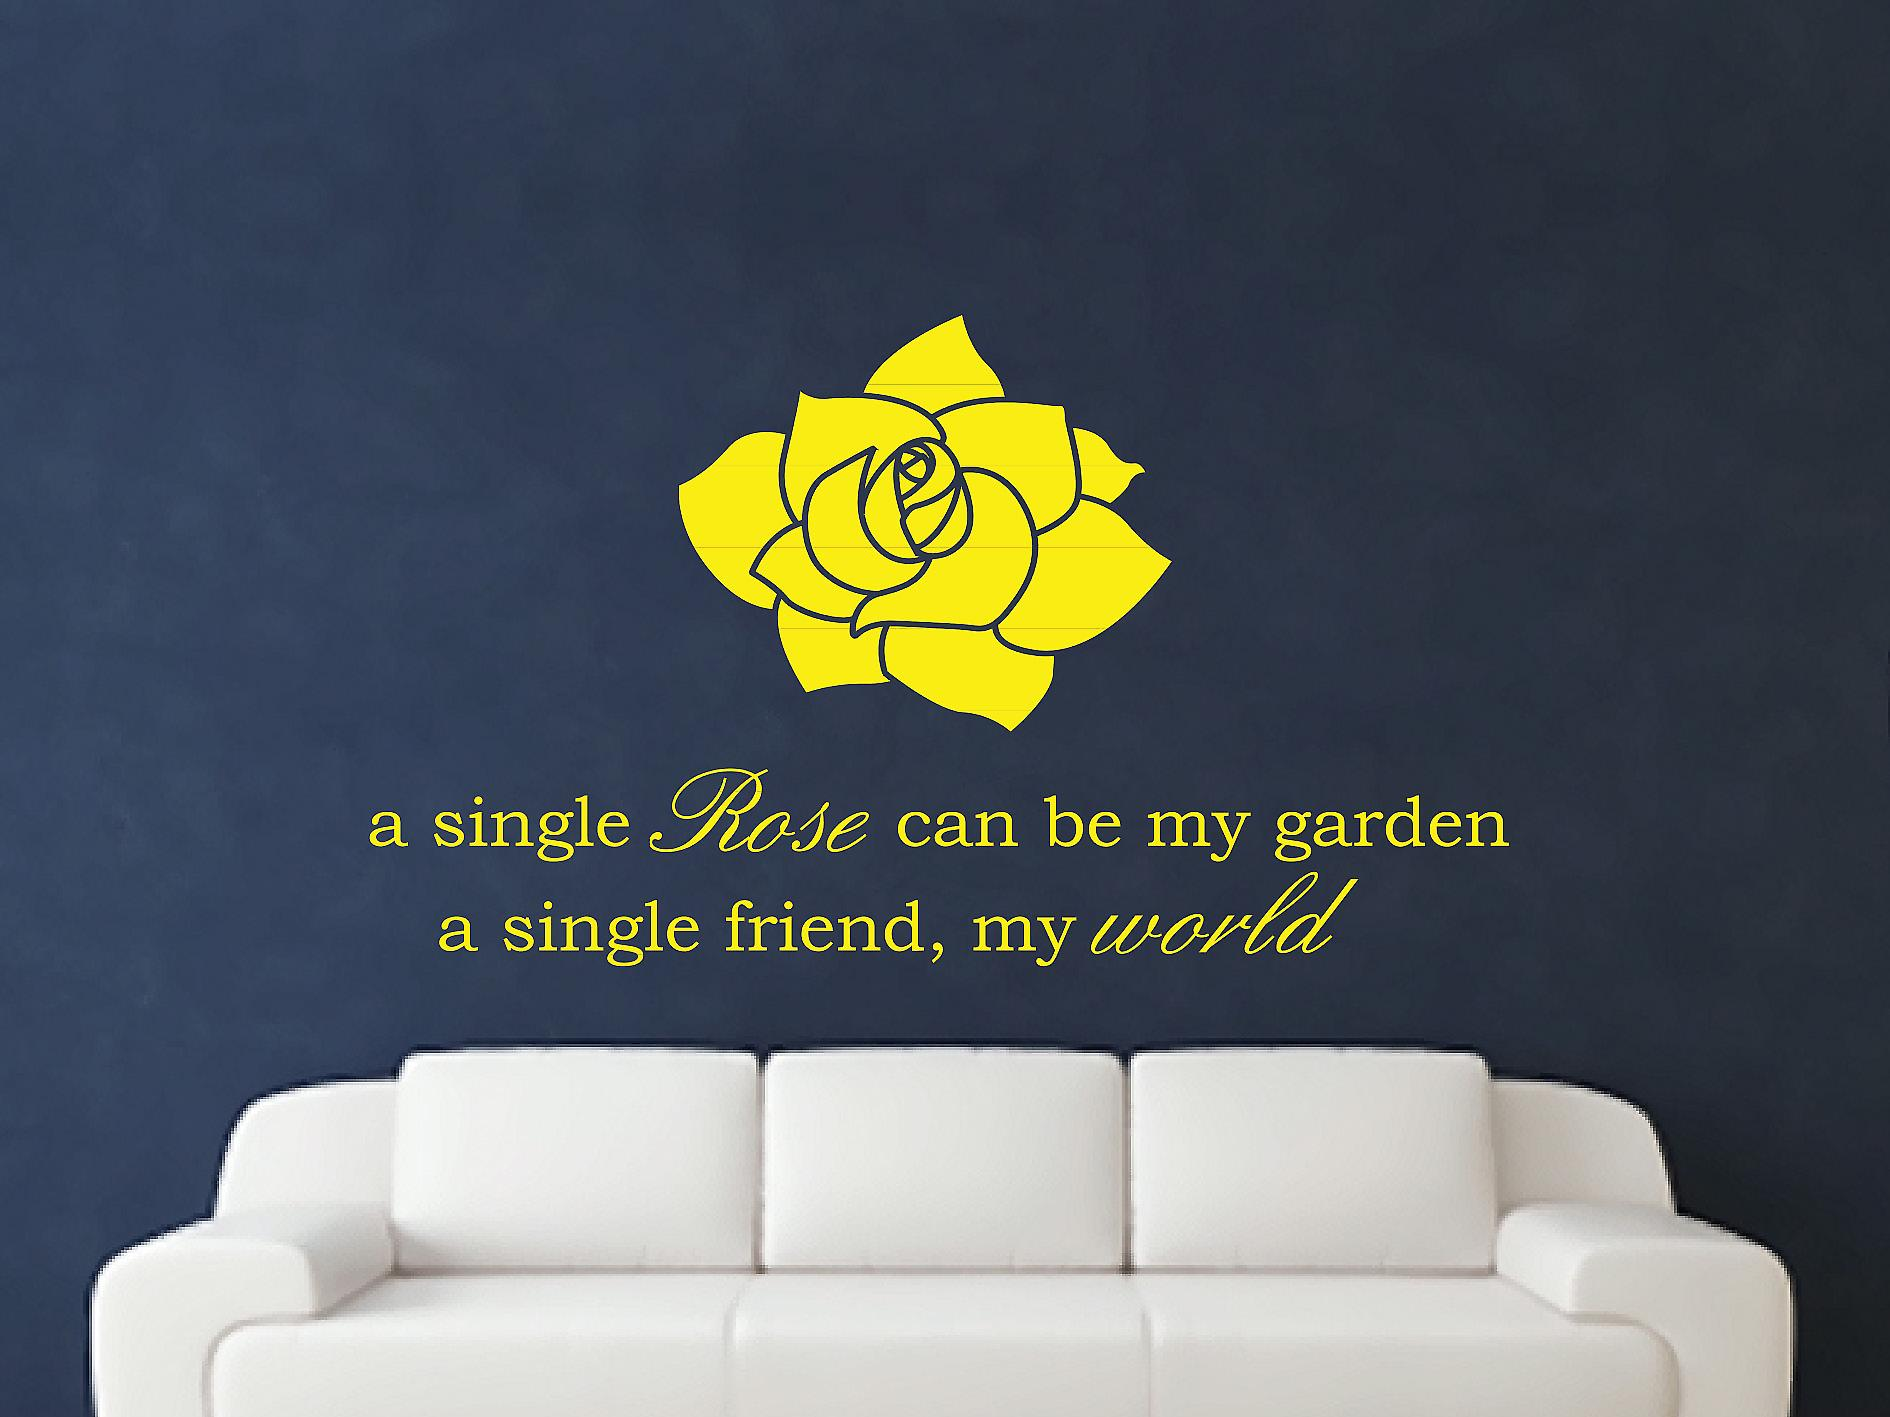 A Single Rose Wall Art autocollants - Bright Yellow